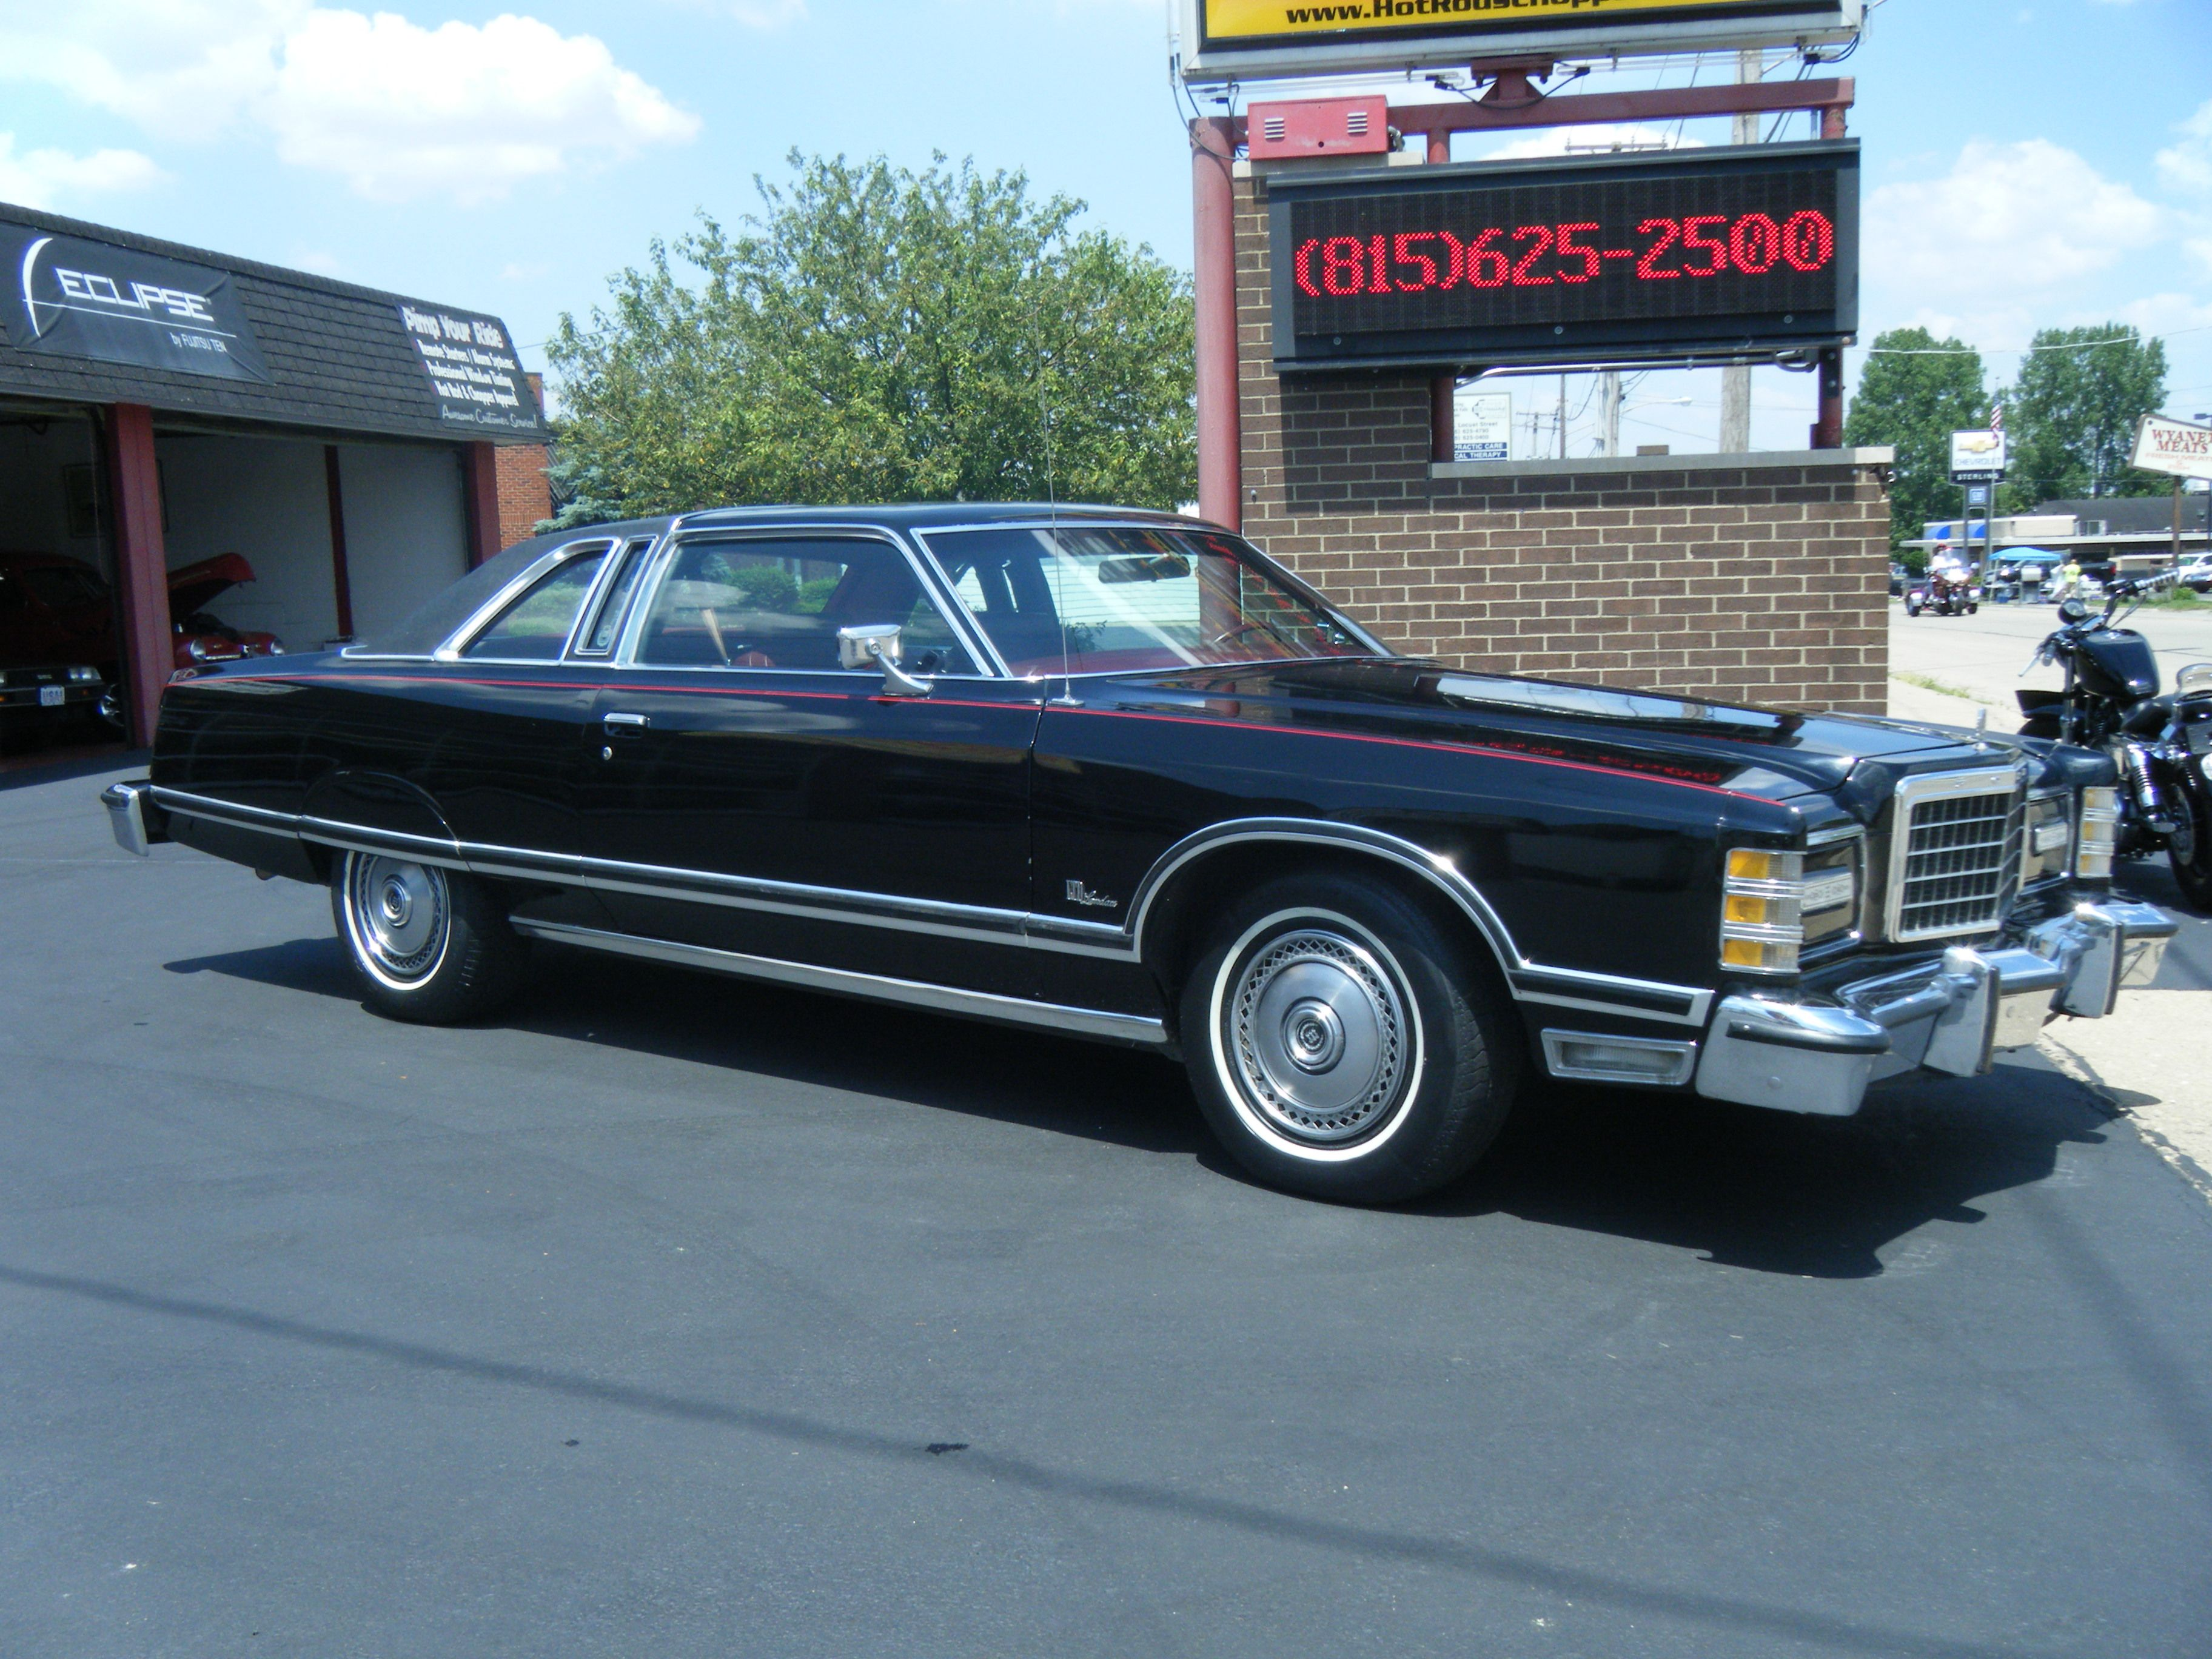 The 1977 Ltd Landau Sold 44 396 Units And Cost 5 717 Brand New